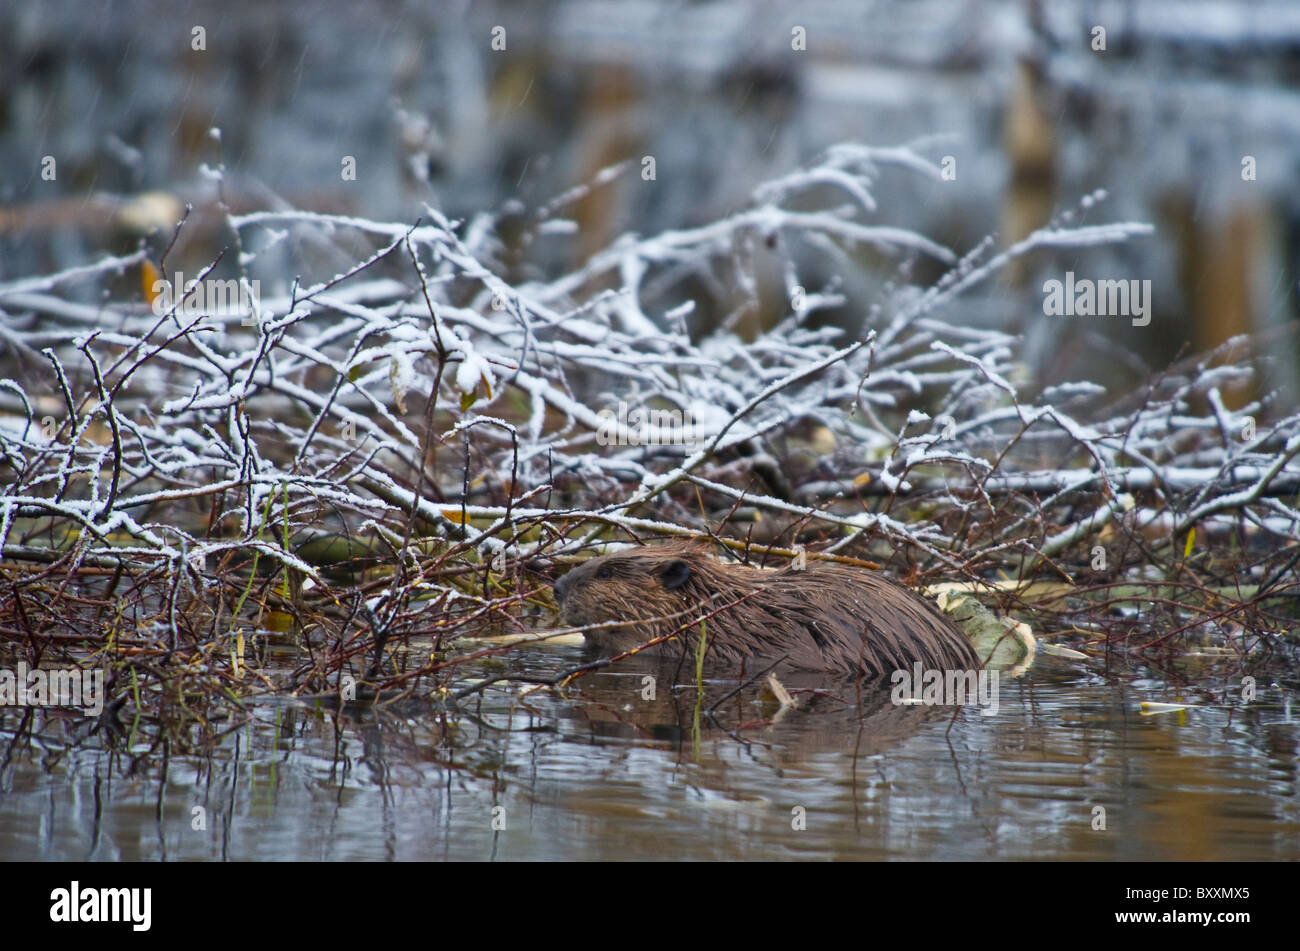 A beaver feeding on his winter food supply - Stock Image